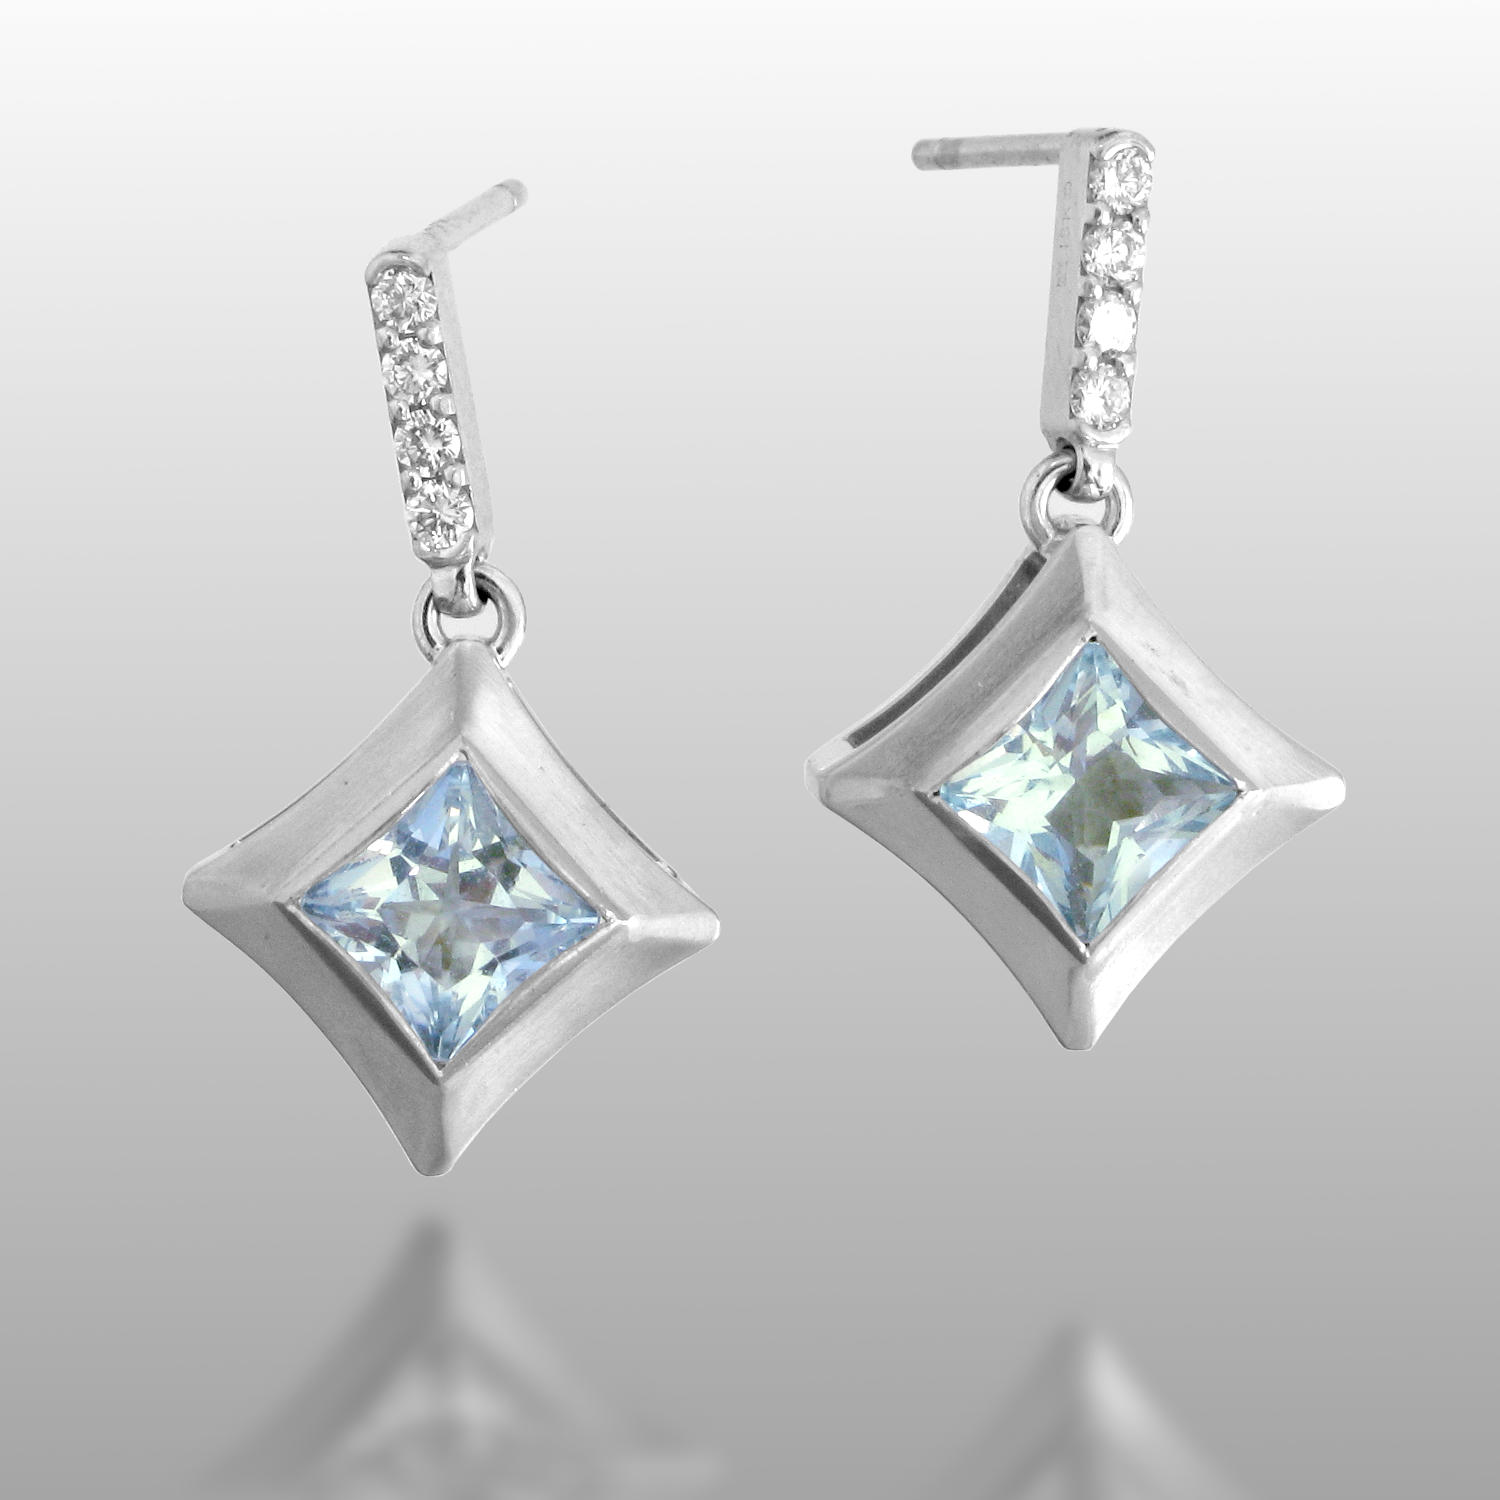 Aquamarine Diamond Earrings 'Karo' in 18k White Gold from the 'Spectrum' Collection by Pratima Design Fine Art Jewelry Maui